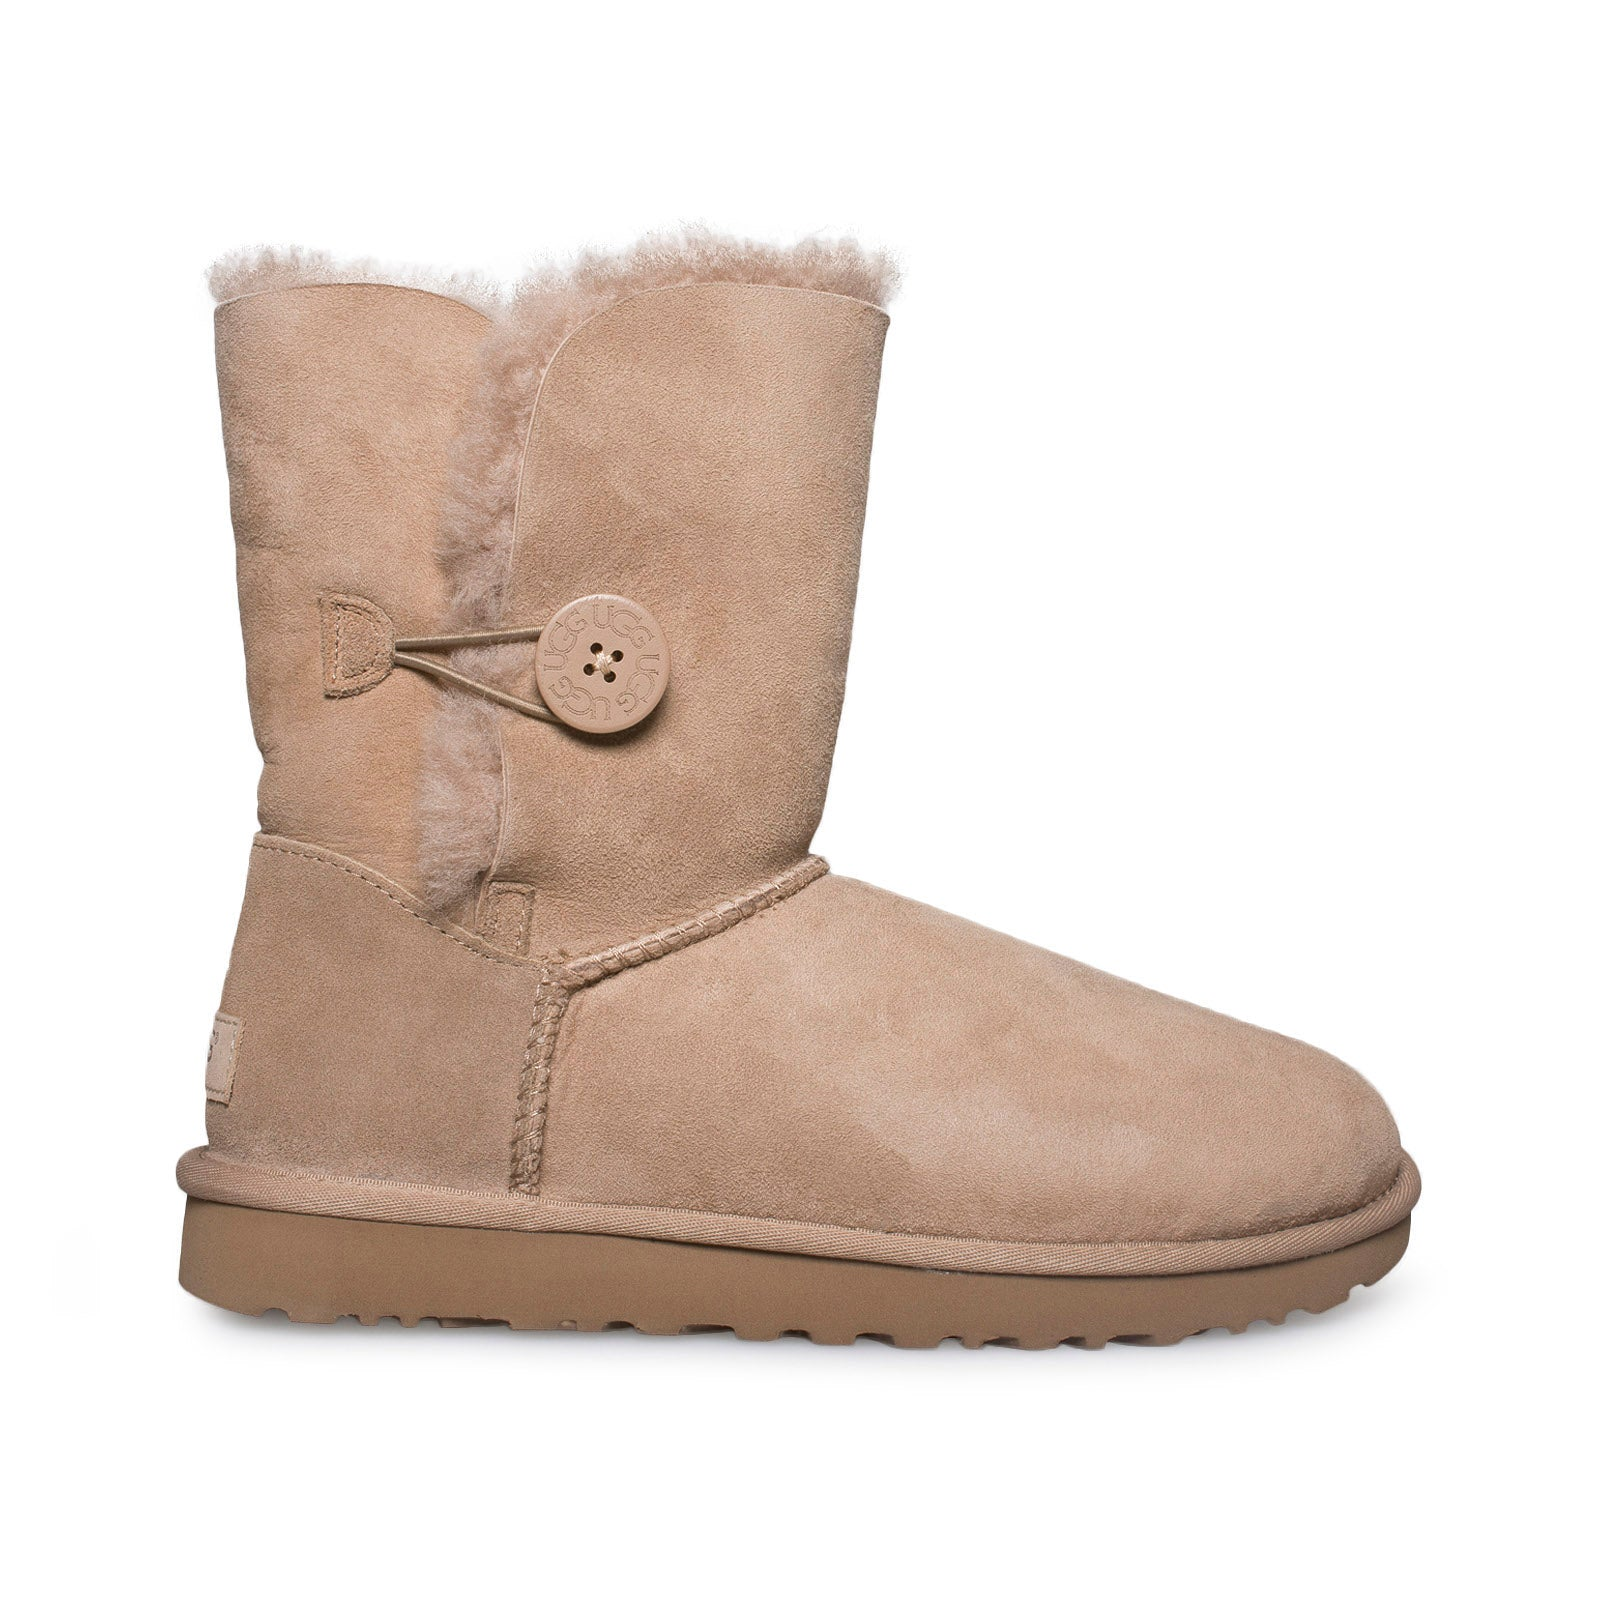 2607213be99 UGG Bailey Button II Fawn Boots